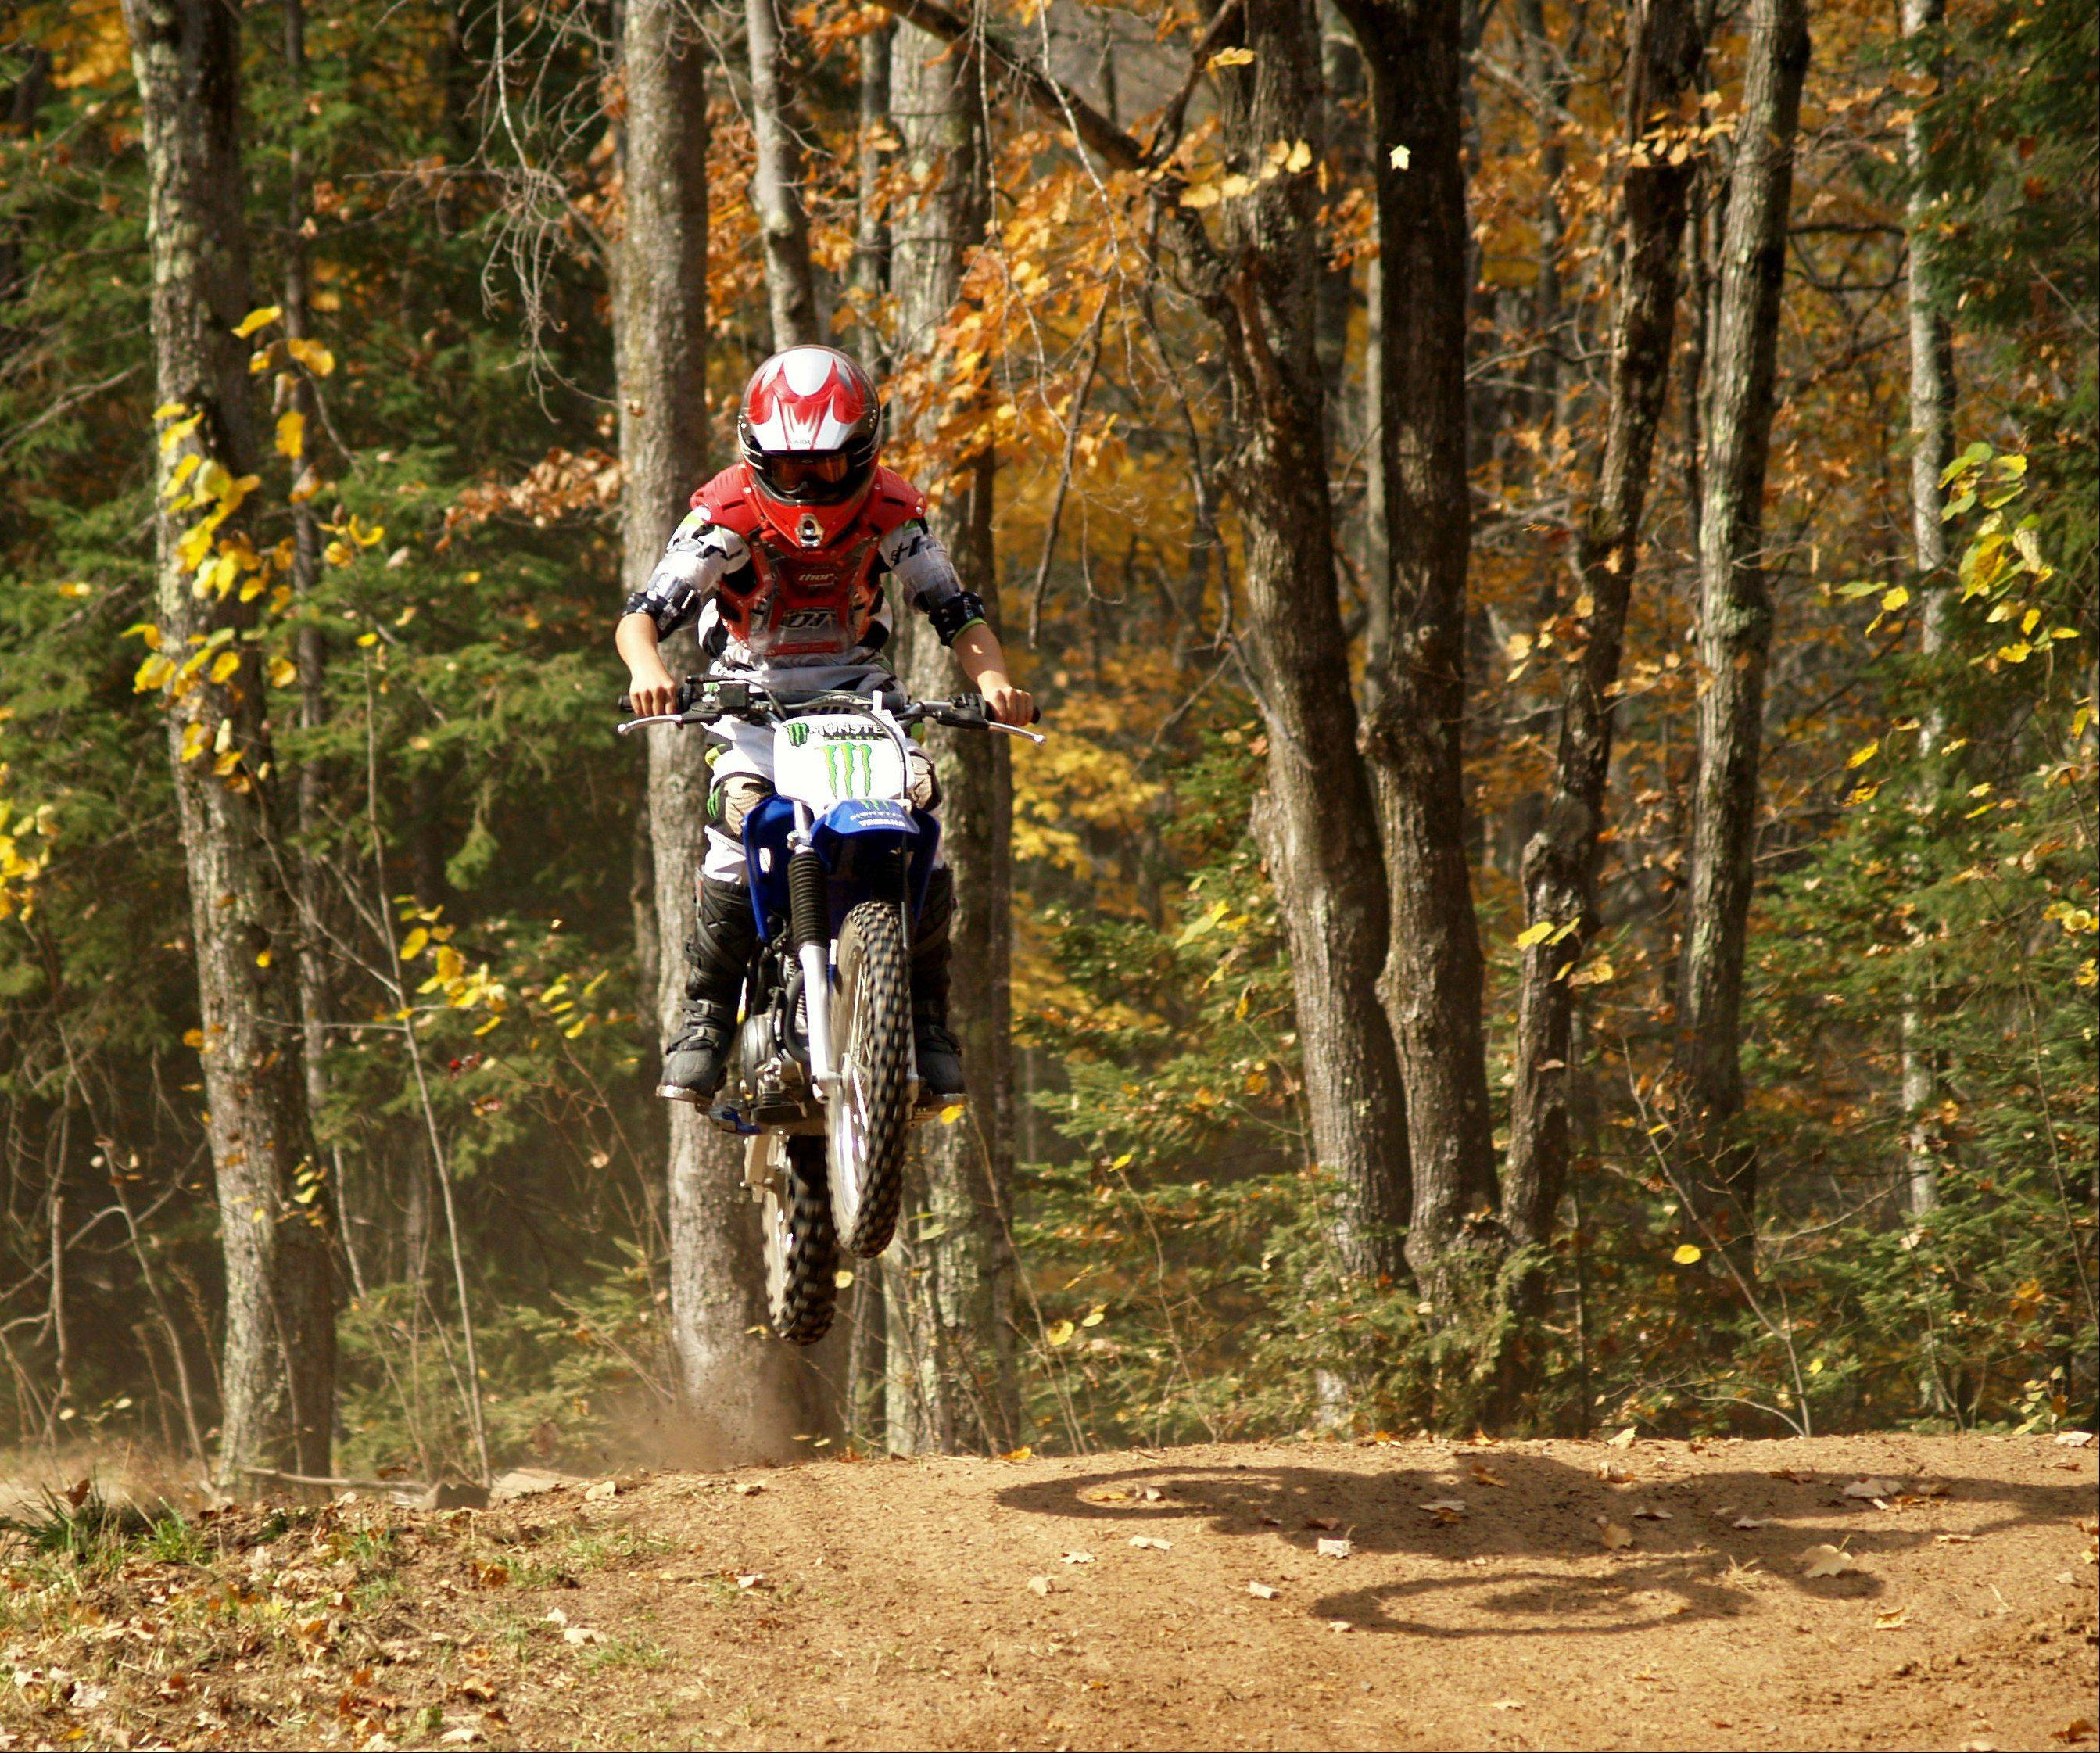 Nick Tinaglia gets some air while dirt biking on trails in Mountain, Wisconsin.